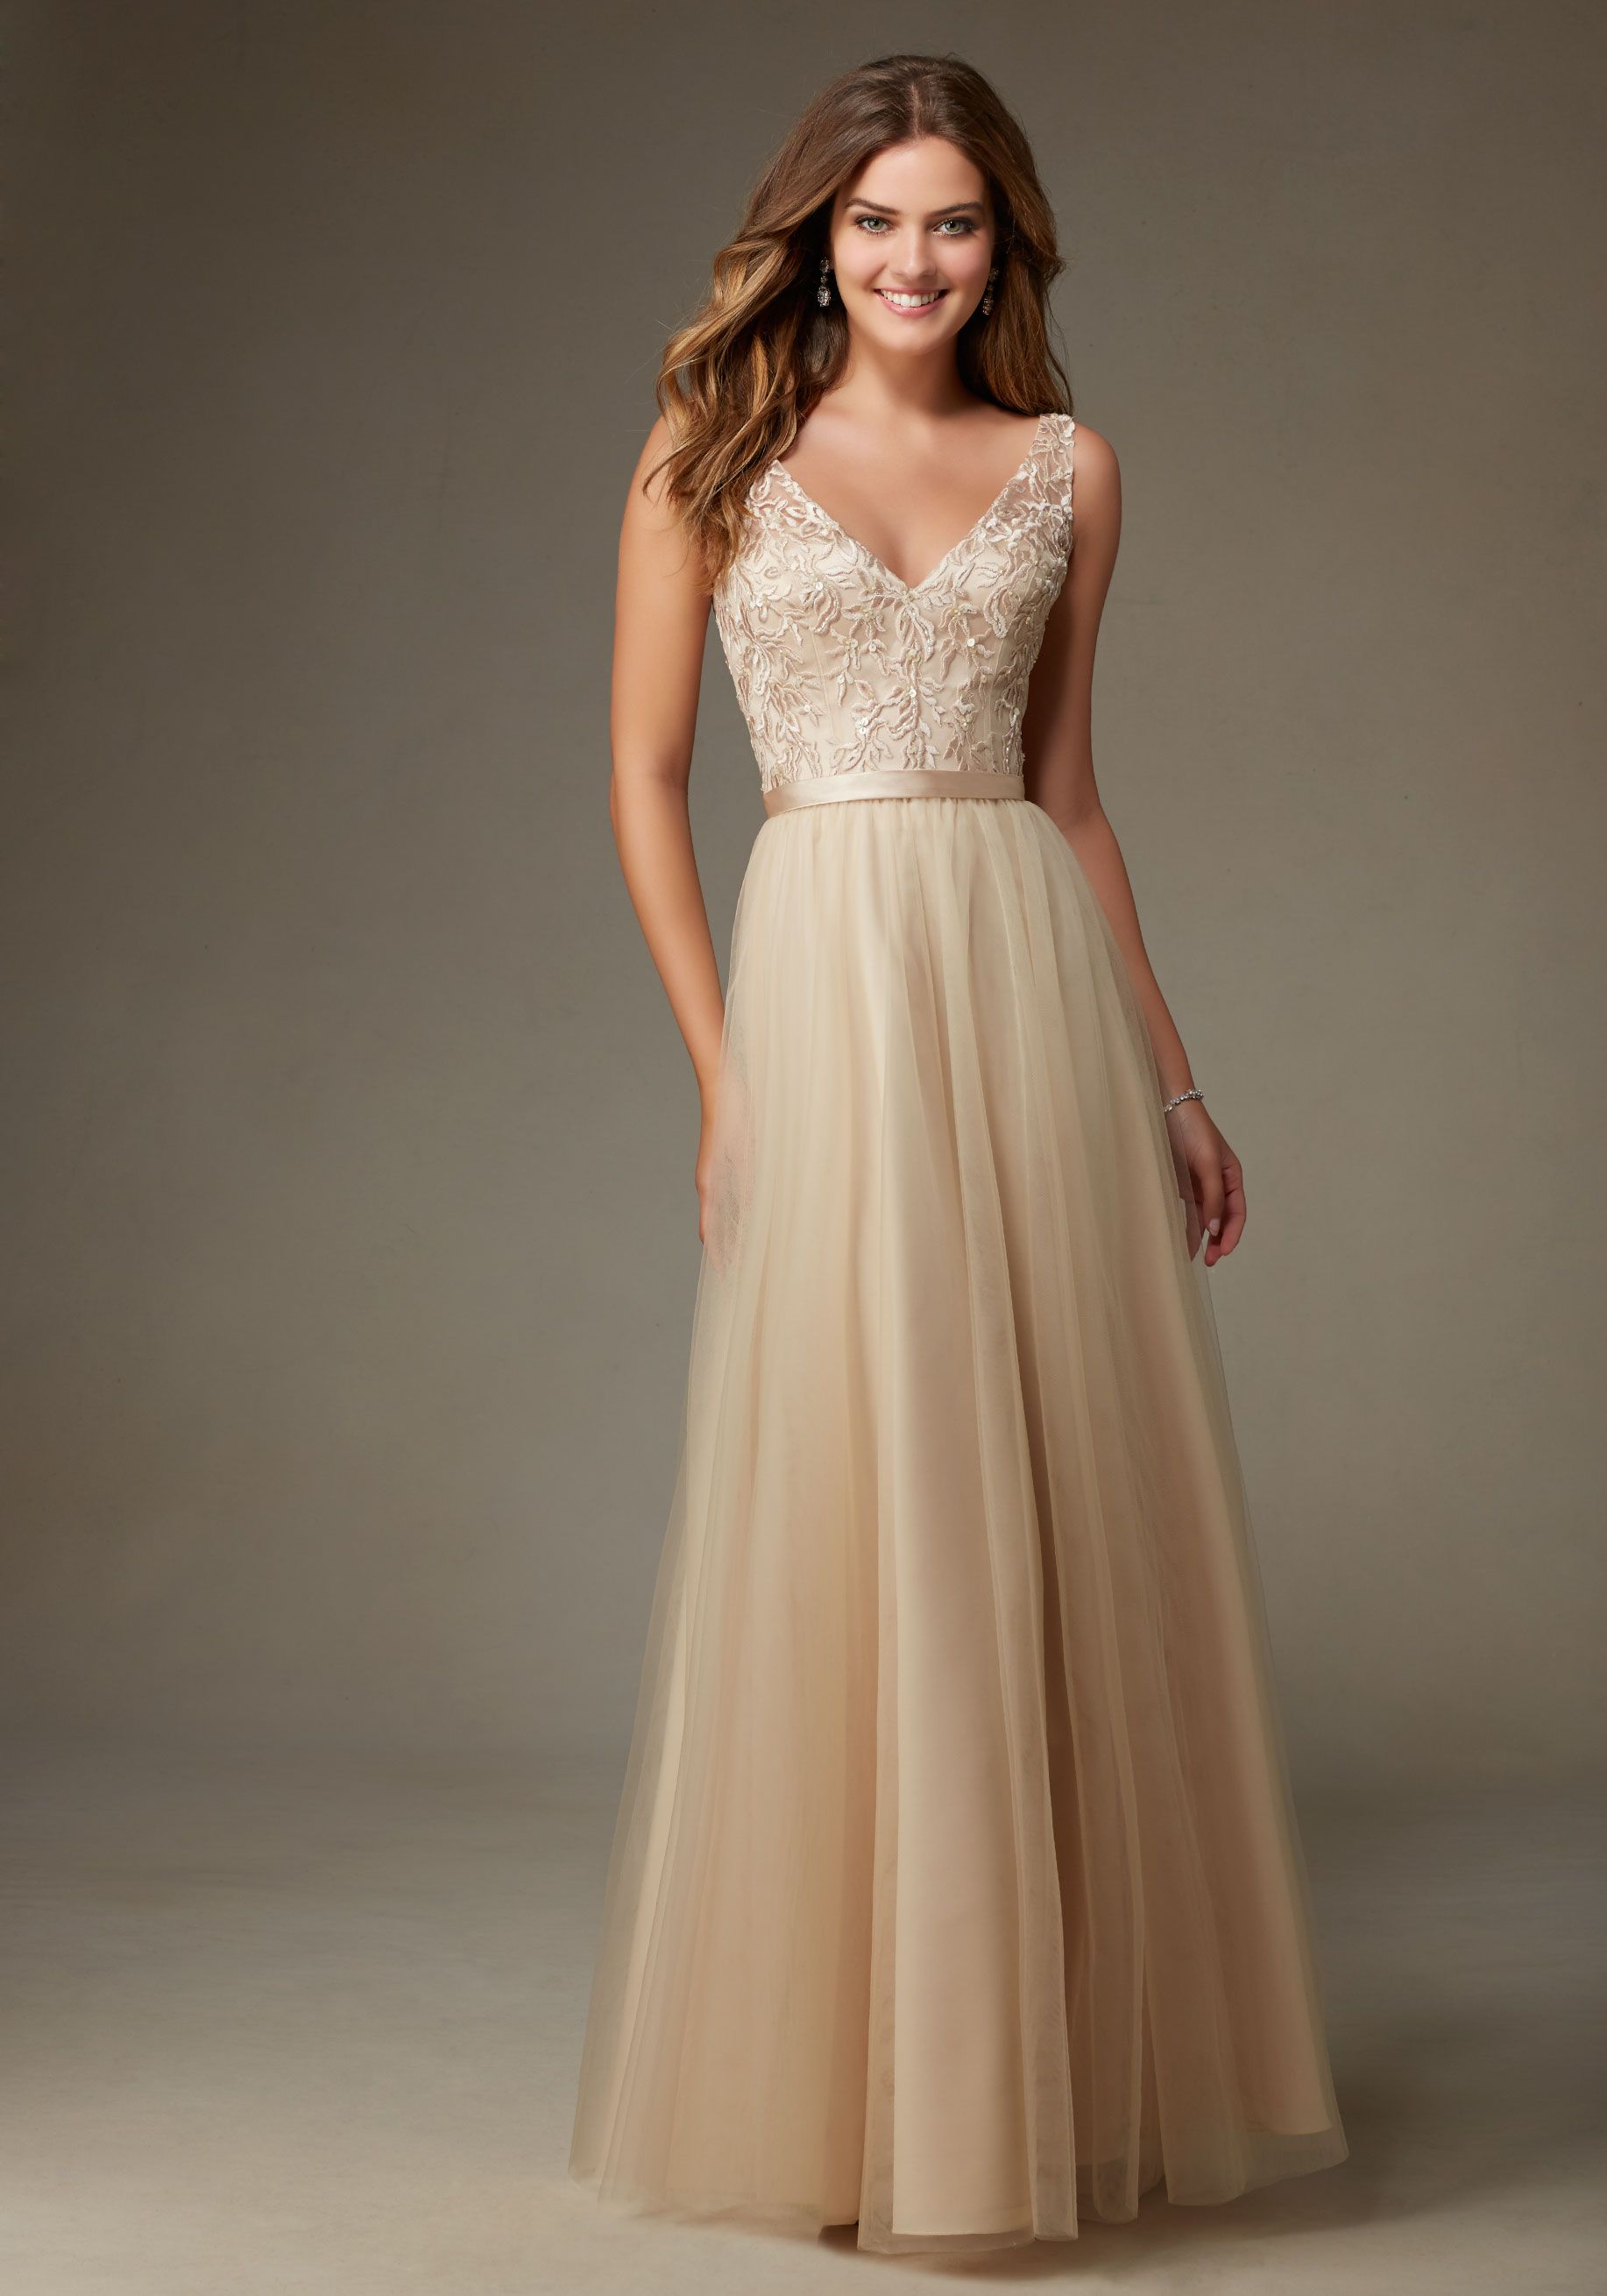 Beautiful Tulle Bridesmaid Dress with